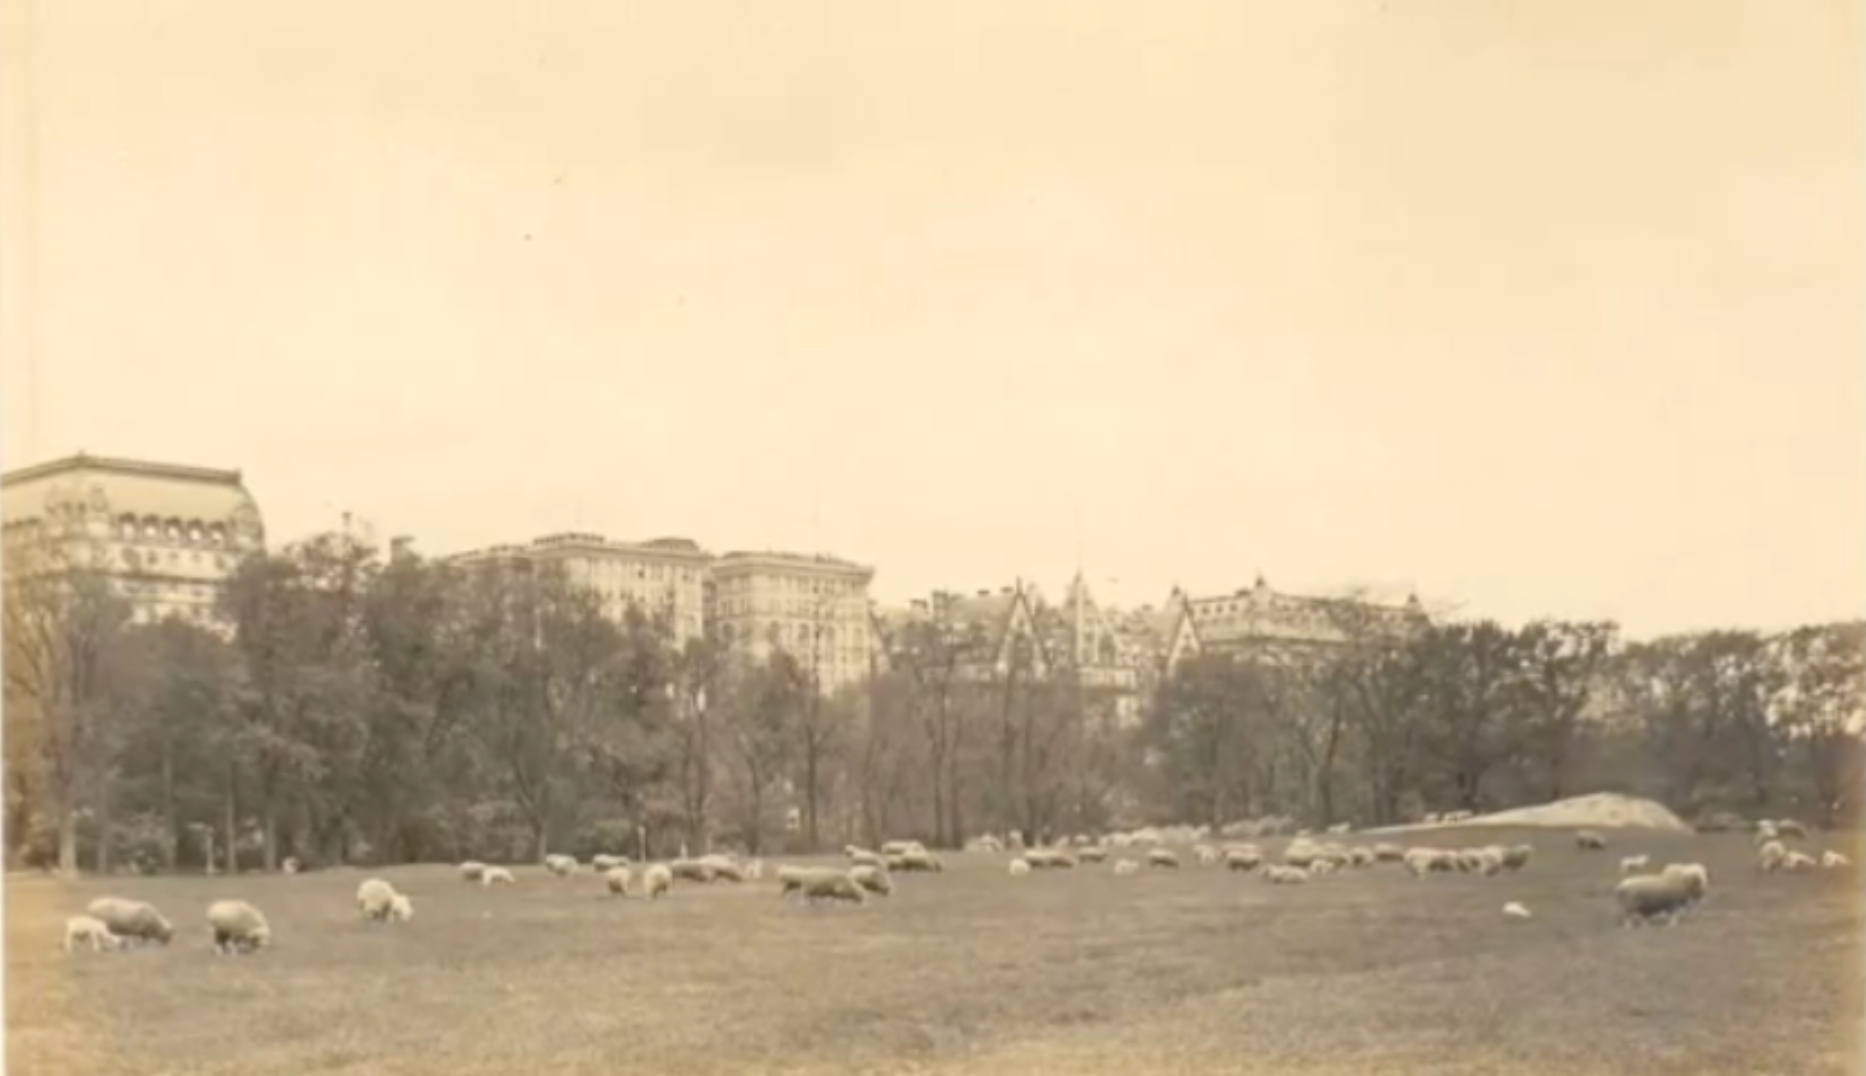 https://upload.wikimedia.org/wikipedia/commons/7/72/Detail_Thaddeus_Wilkerson_Postcard_Sheep_Fold_Central_Park_NY.jpg